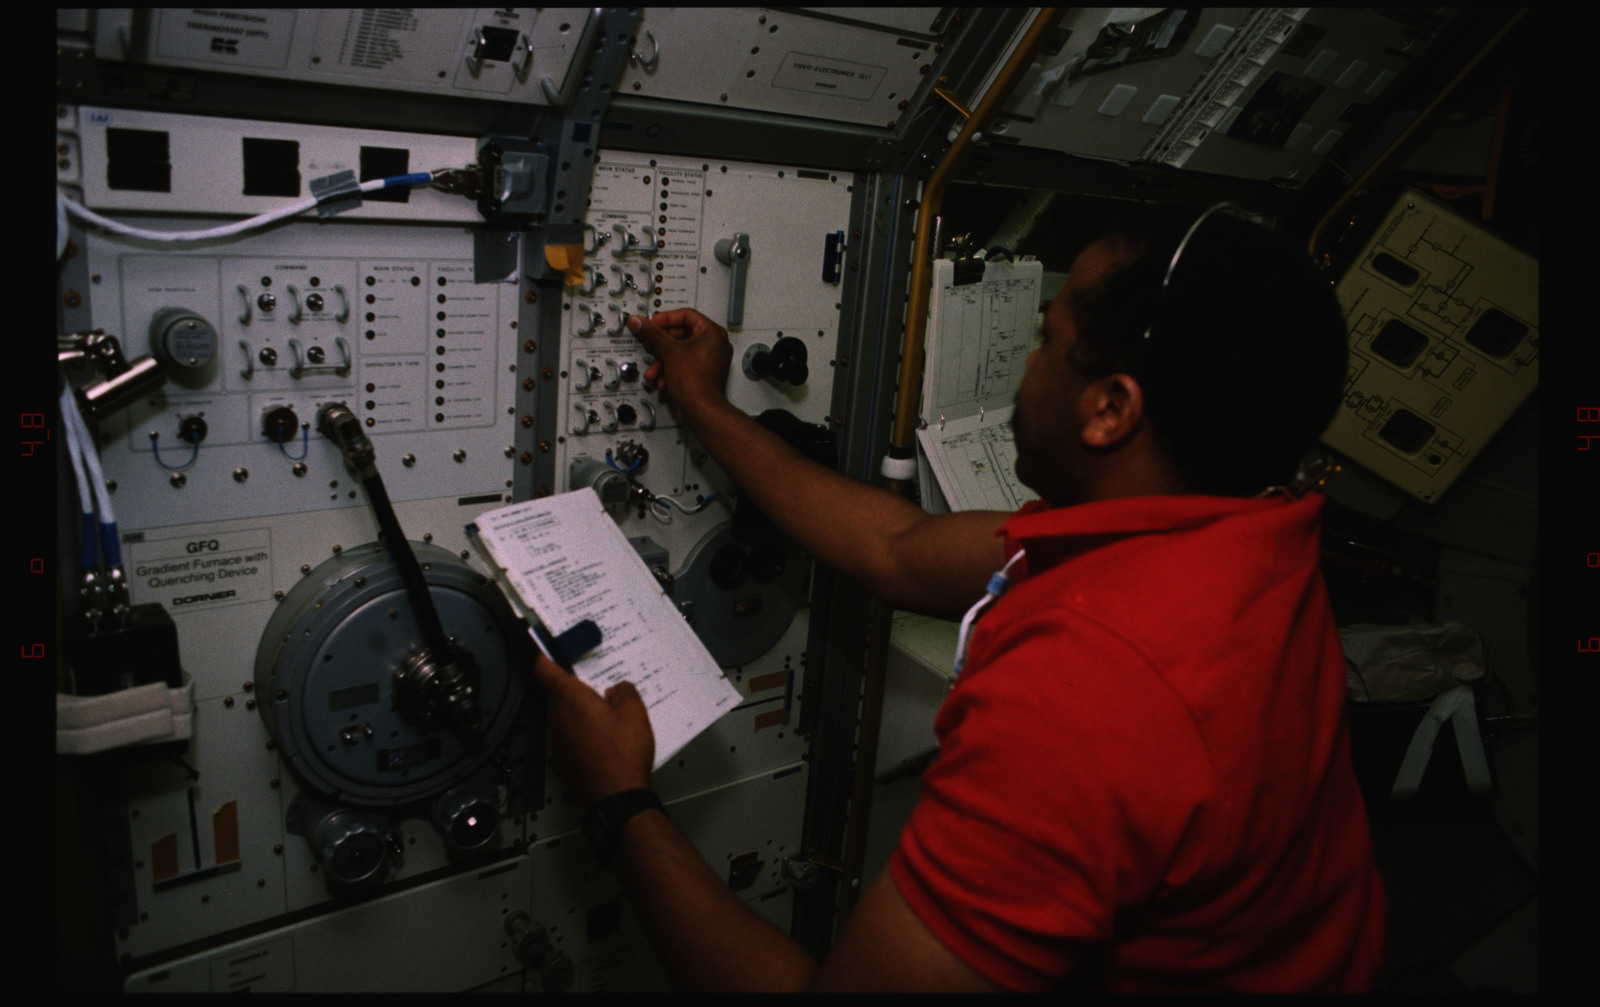 STS055-235-025 - STS-055 - Crewmember at the D-2 Spacelab MEDEA Rack Furnace.